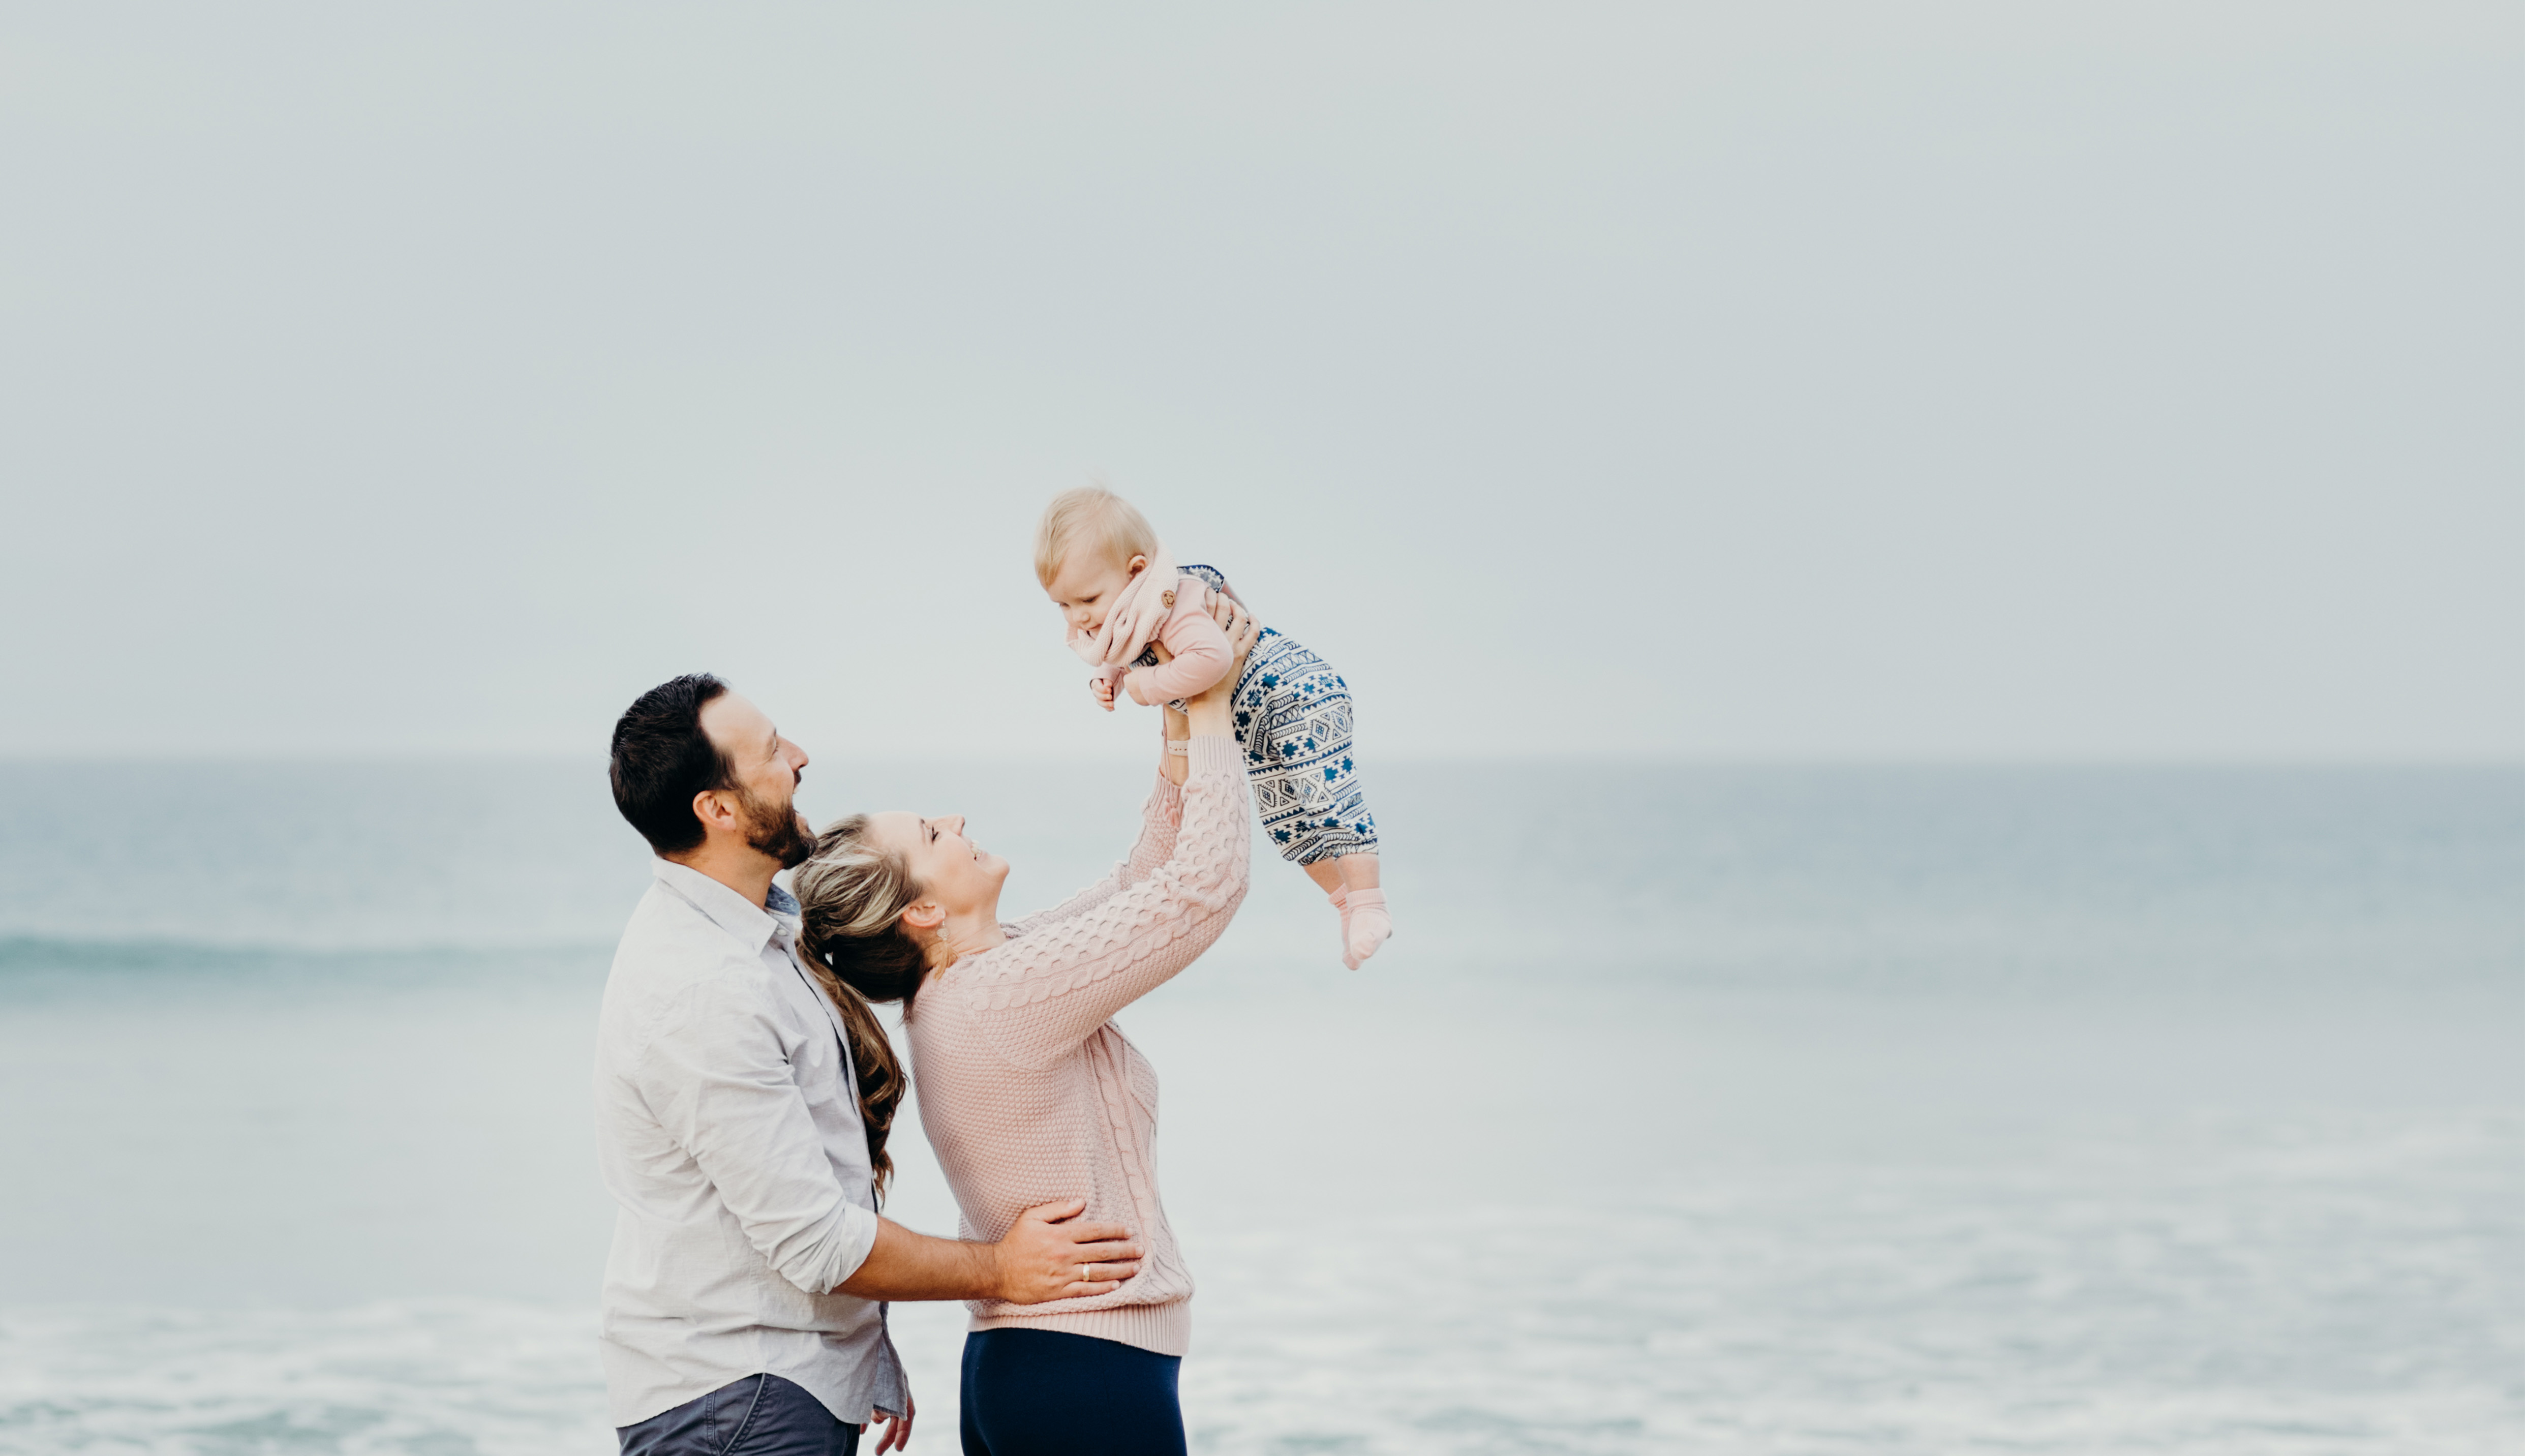 michelle brink, garden route, family photographer, knysna, plettenberg bay, forest, beach, plett it's a feeling, family photograph, the wreck, beach, van eck, keurboomstrand, natures valley, shoot robberg